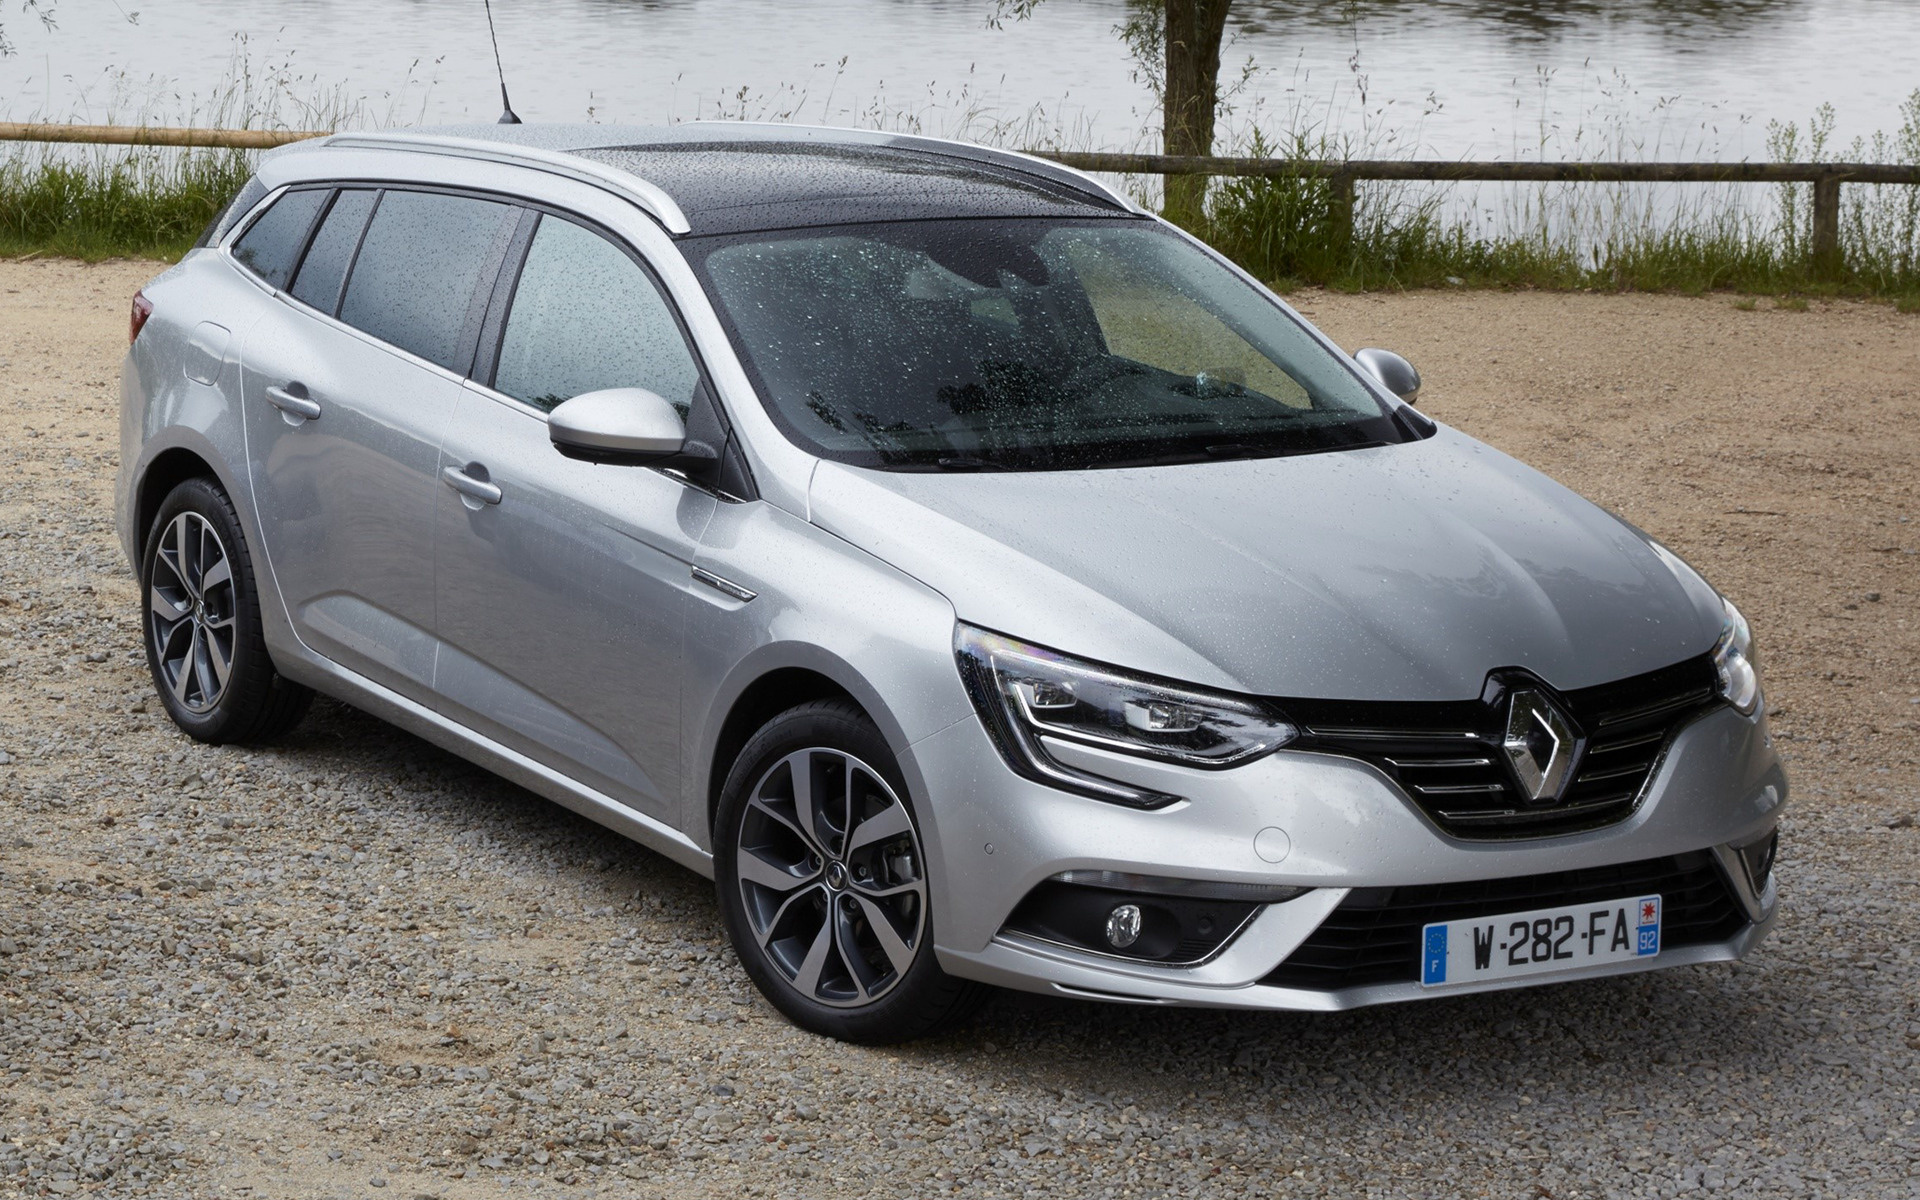 Renault Megane Estate (2016) Wallpapers and HD Images ...